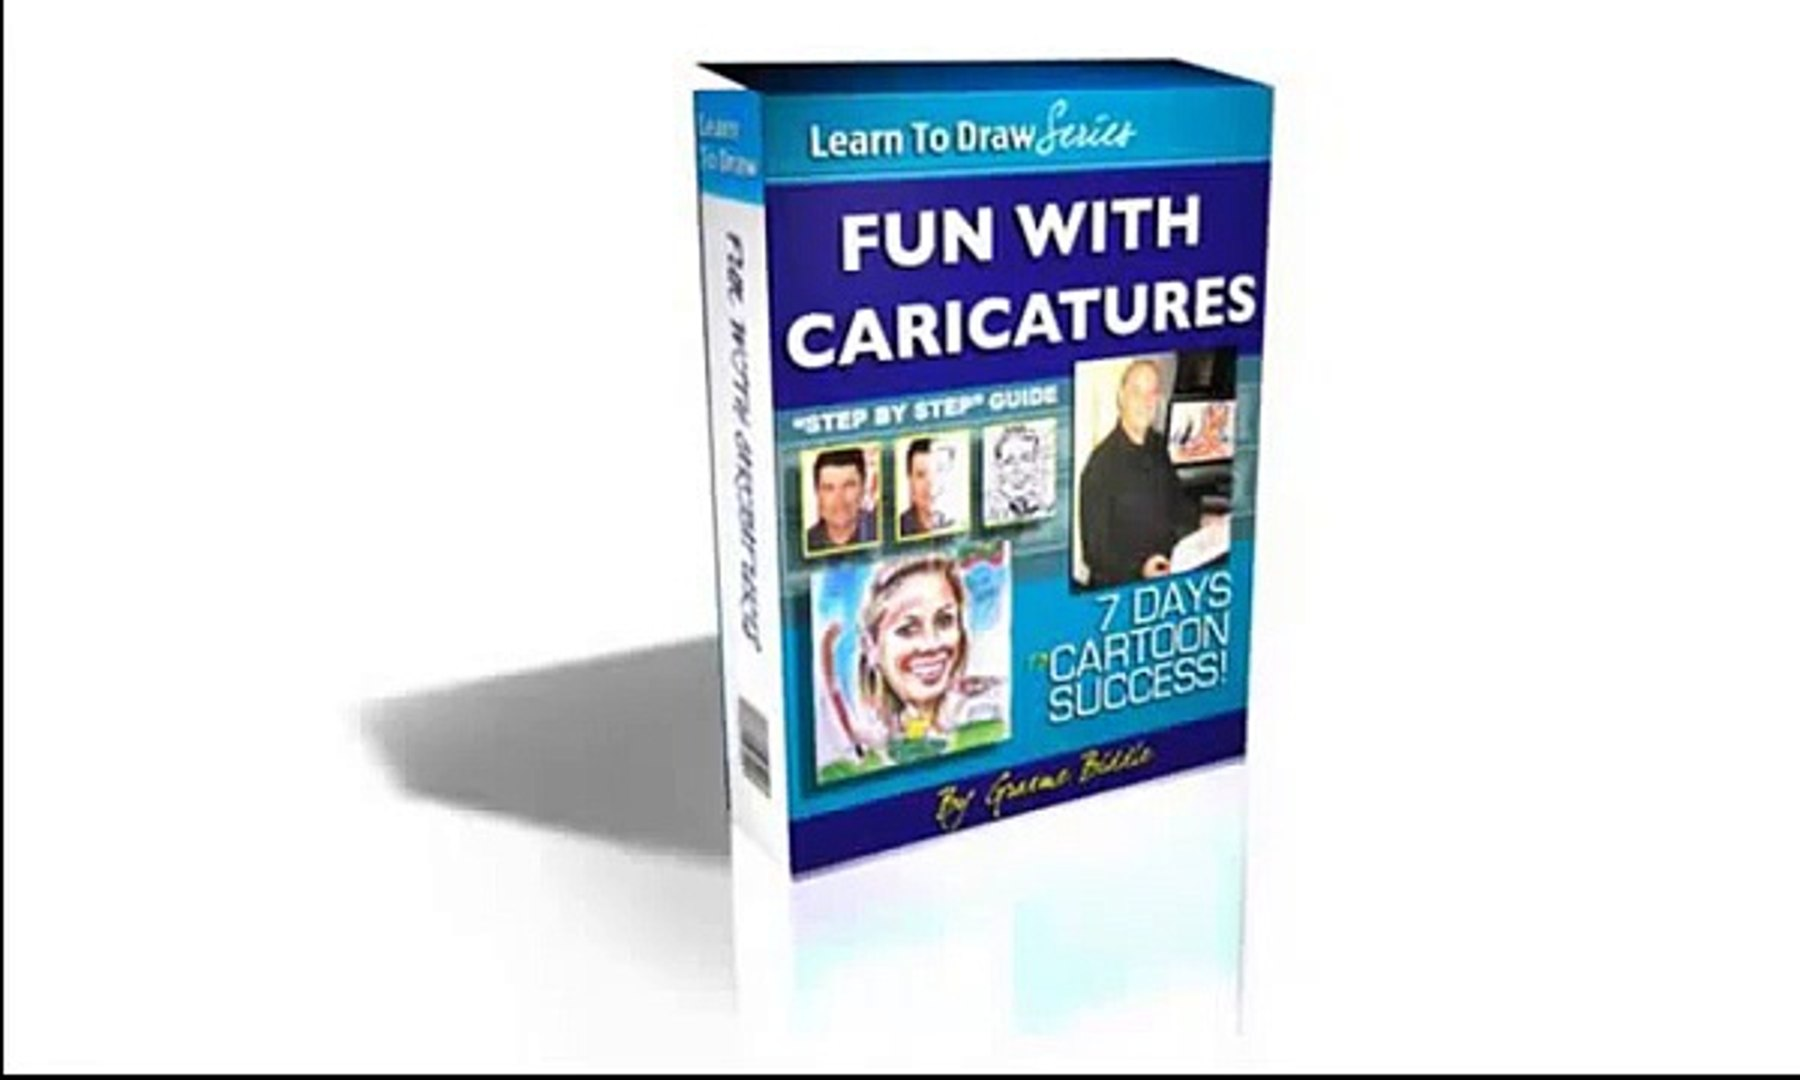 Draw caricature step by step - Learn To Draw Caricatures